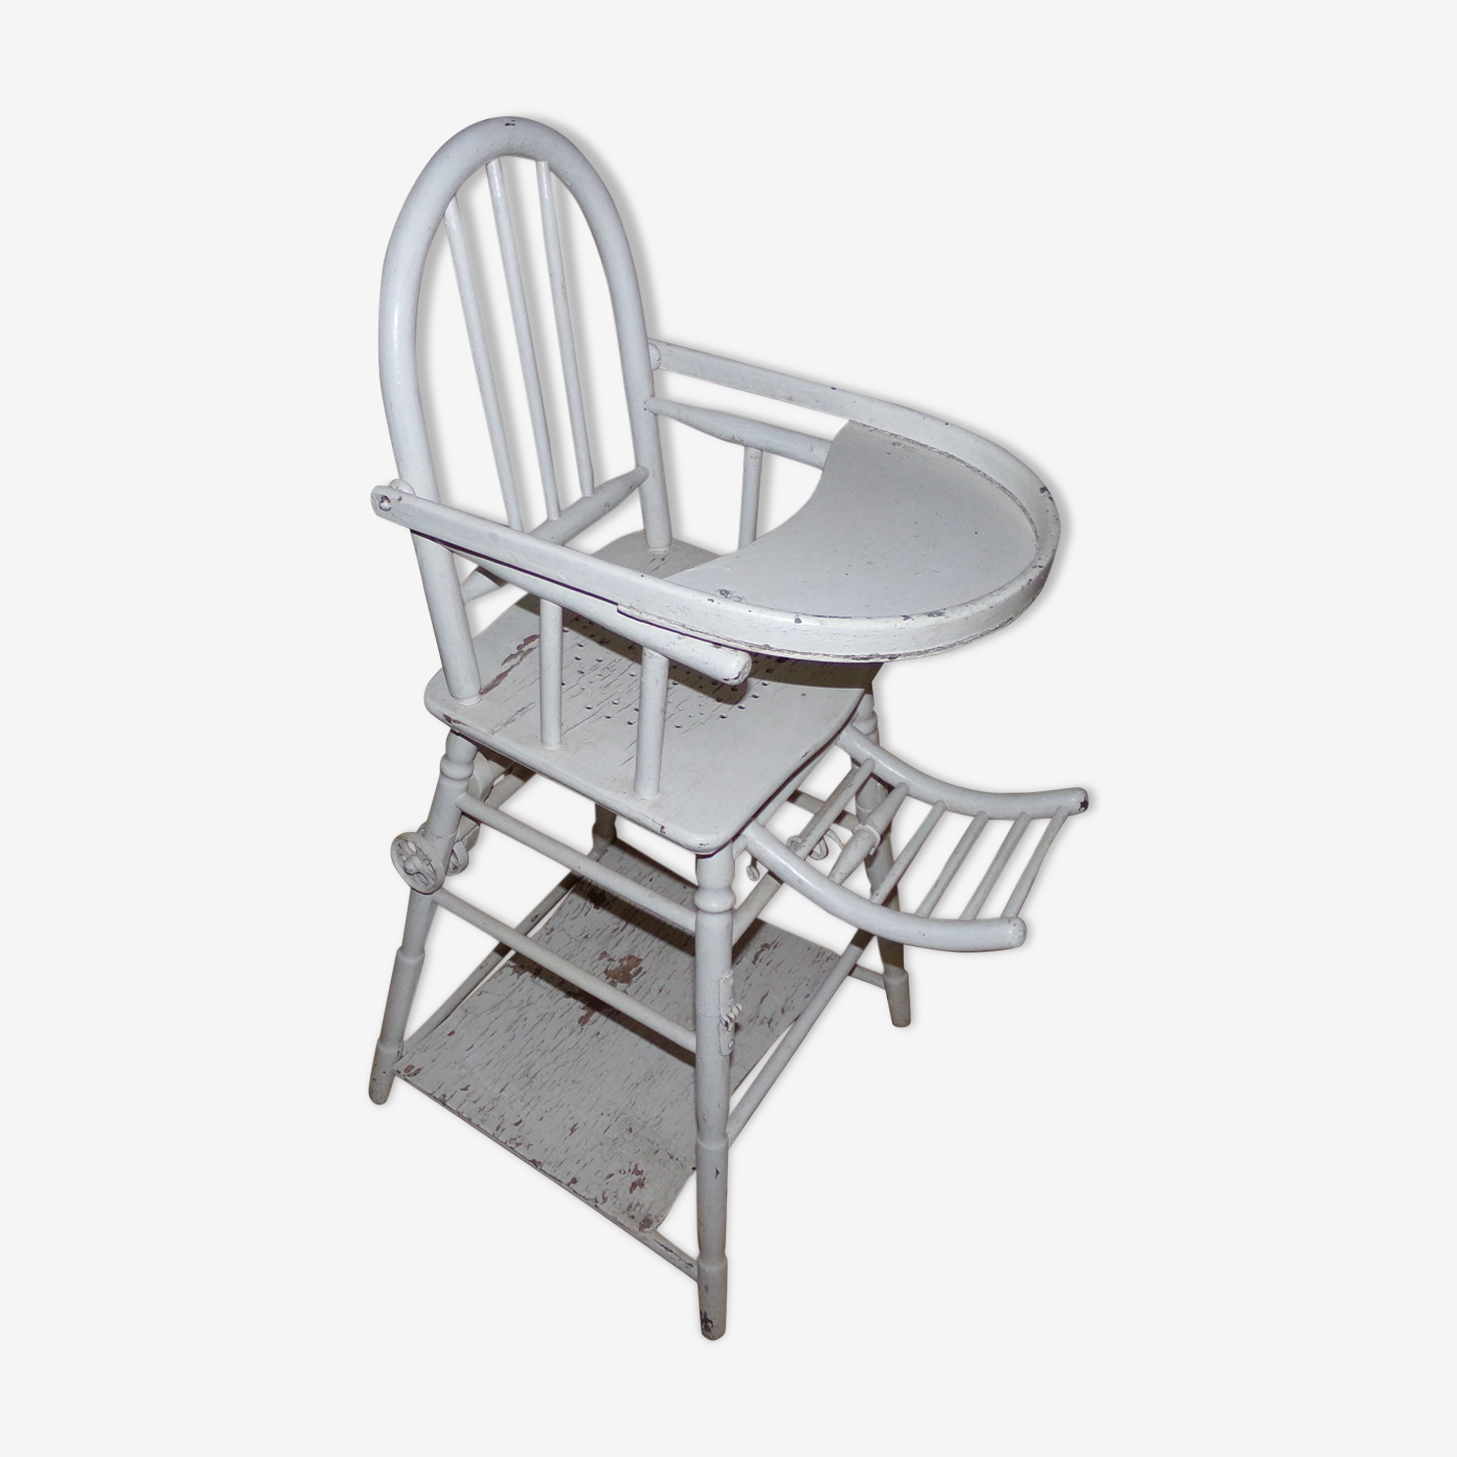 Old highchair 1900